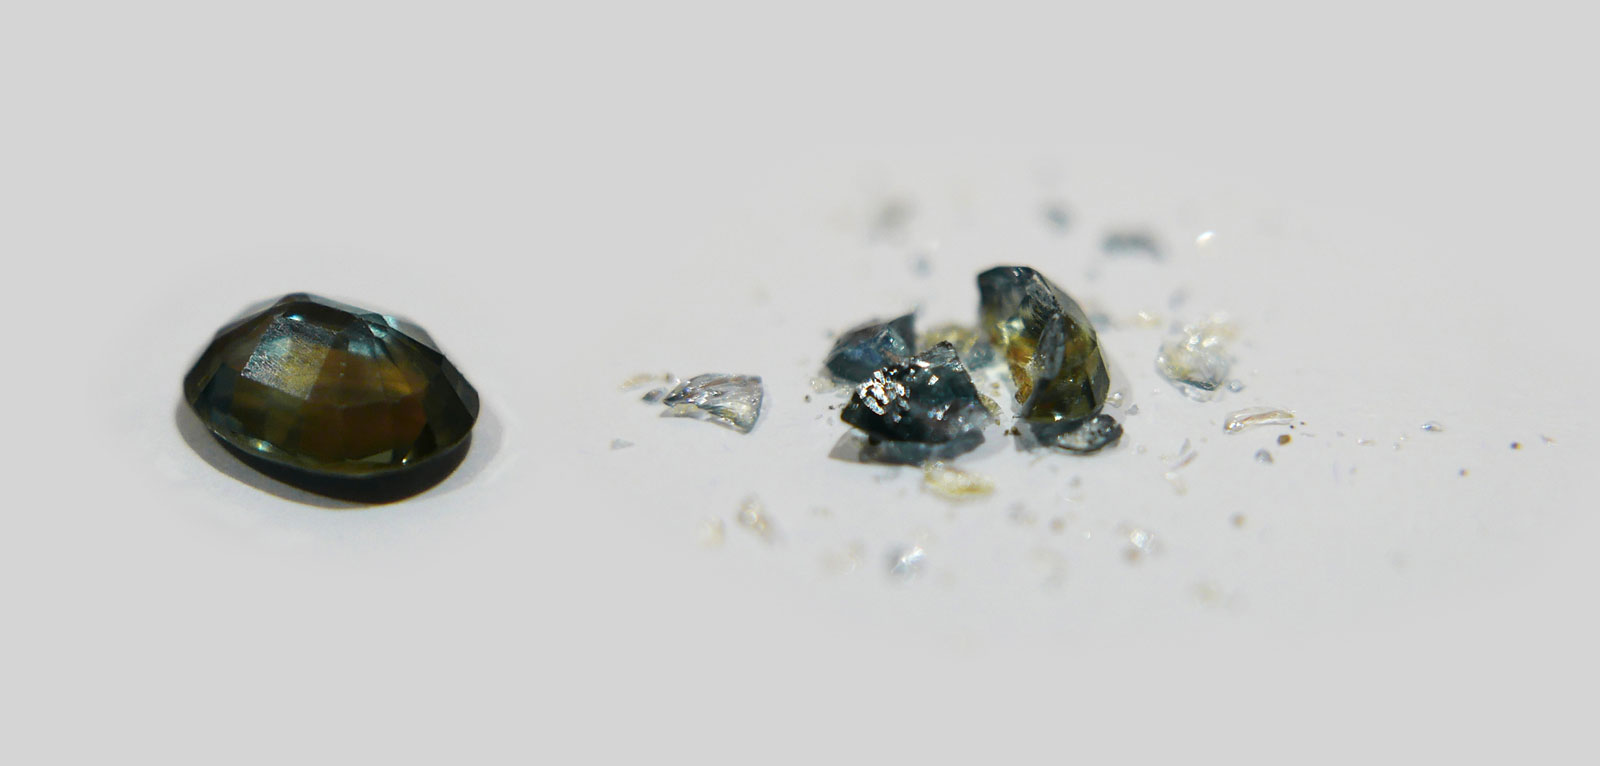 A basalt-related sapphire (left) that was heat treated by normal methods was subjected to a hammer test, which caused it to break into many fragments (right).